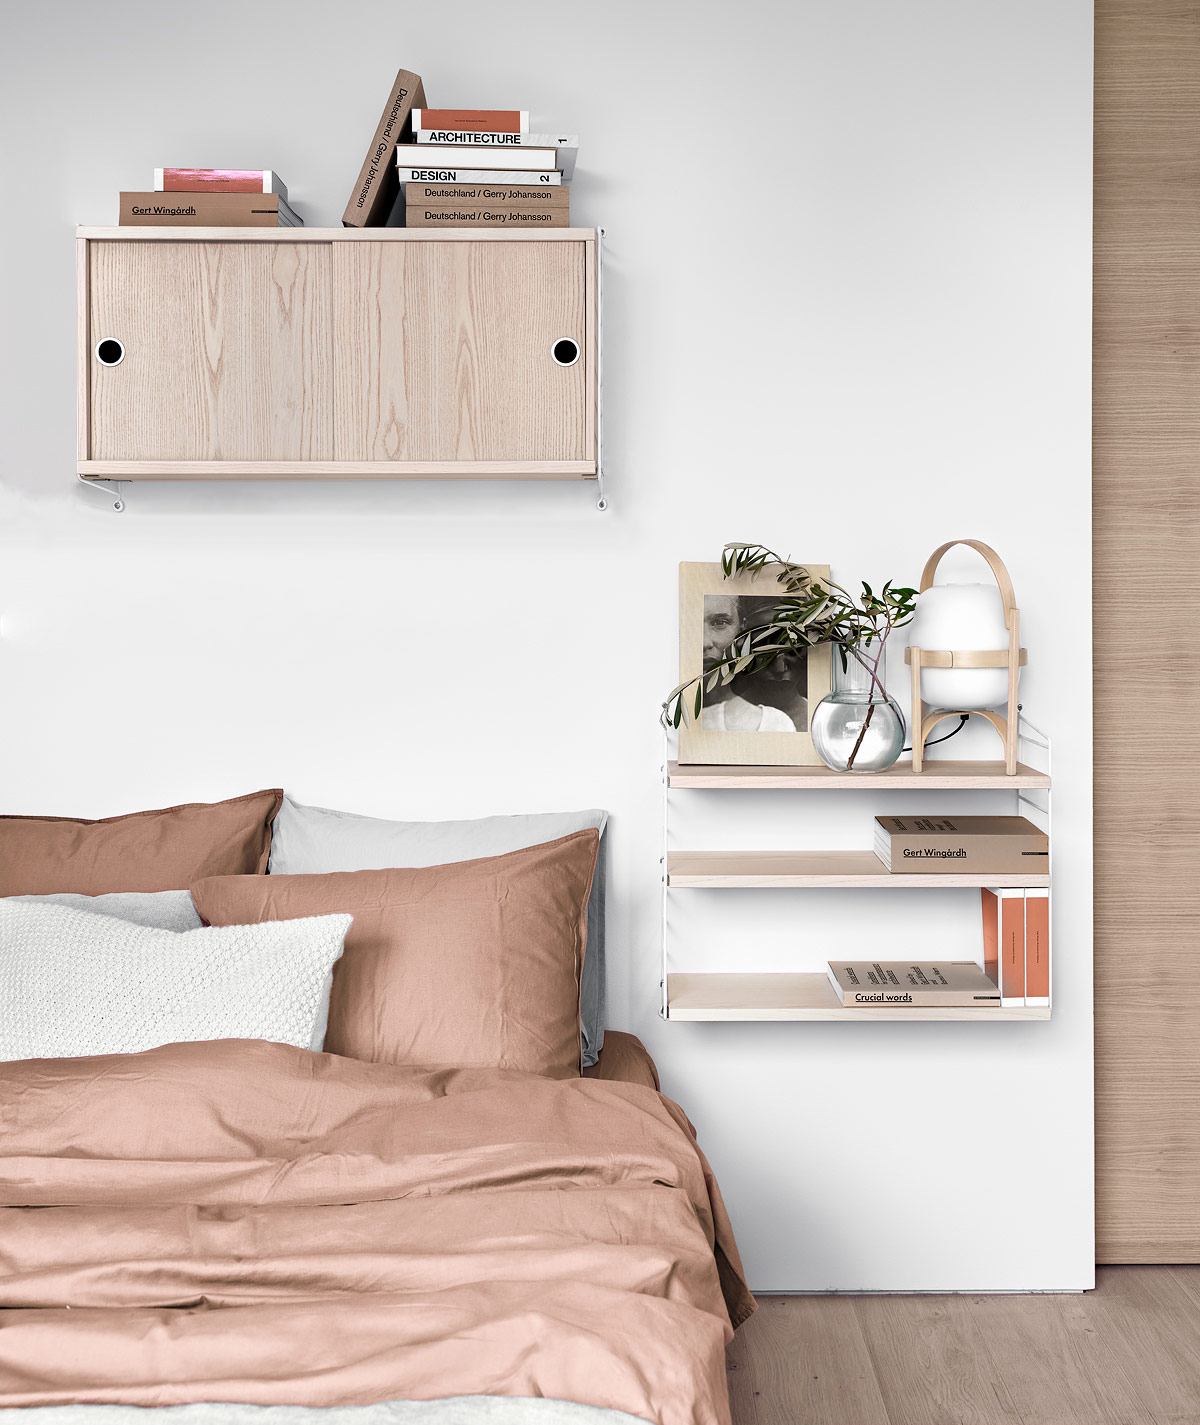 Storage-thats-good-for-the-soul--String-Bedroom-Sytem-Shelving & String Pocket Shelving Ash.jpg